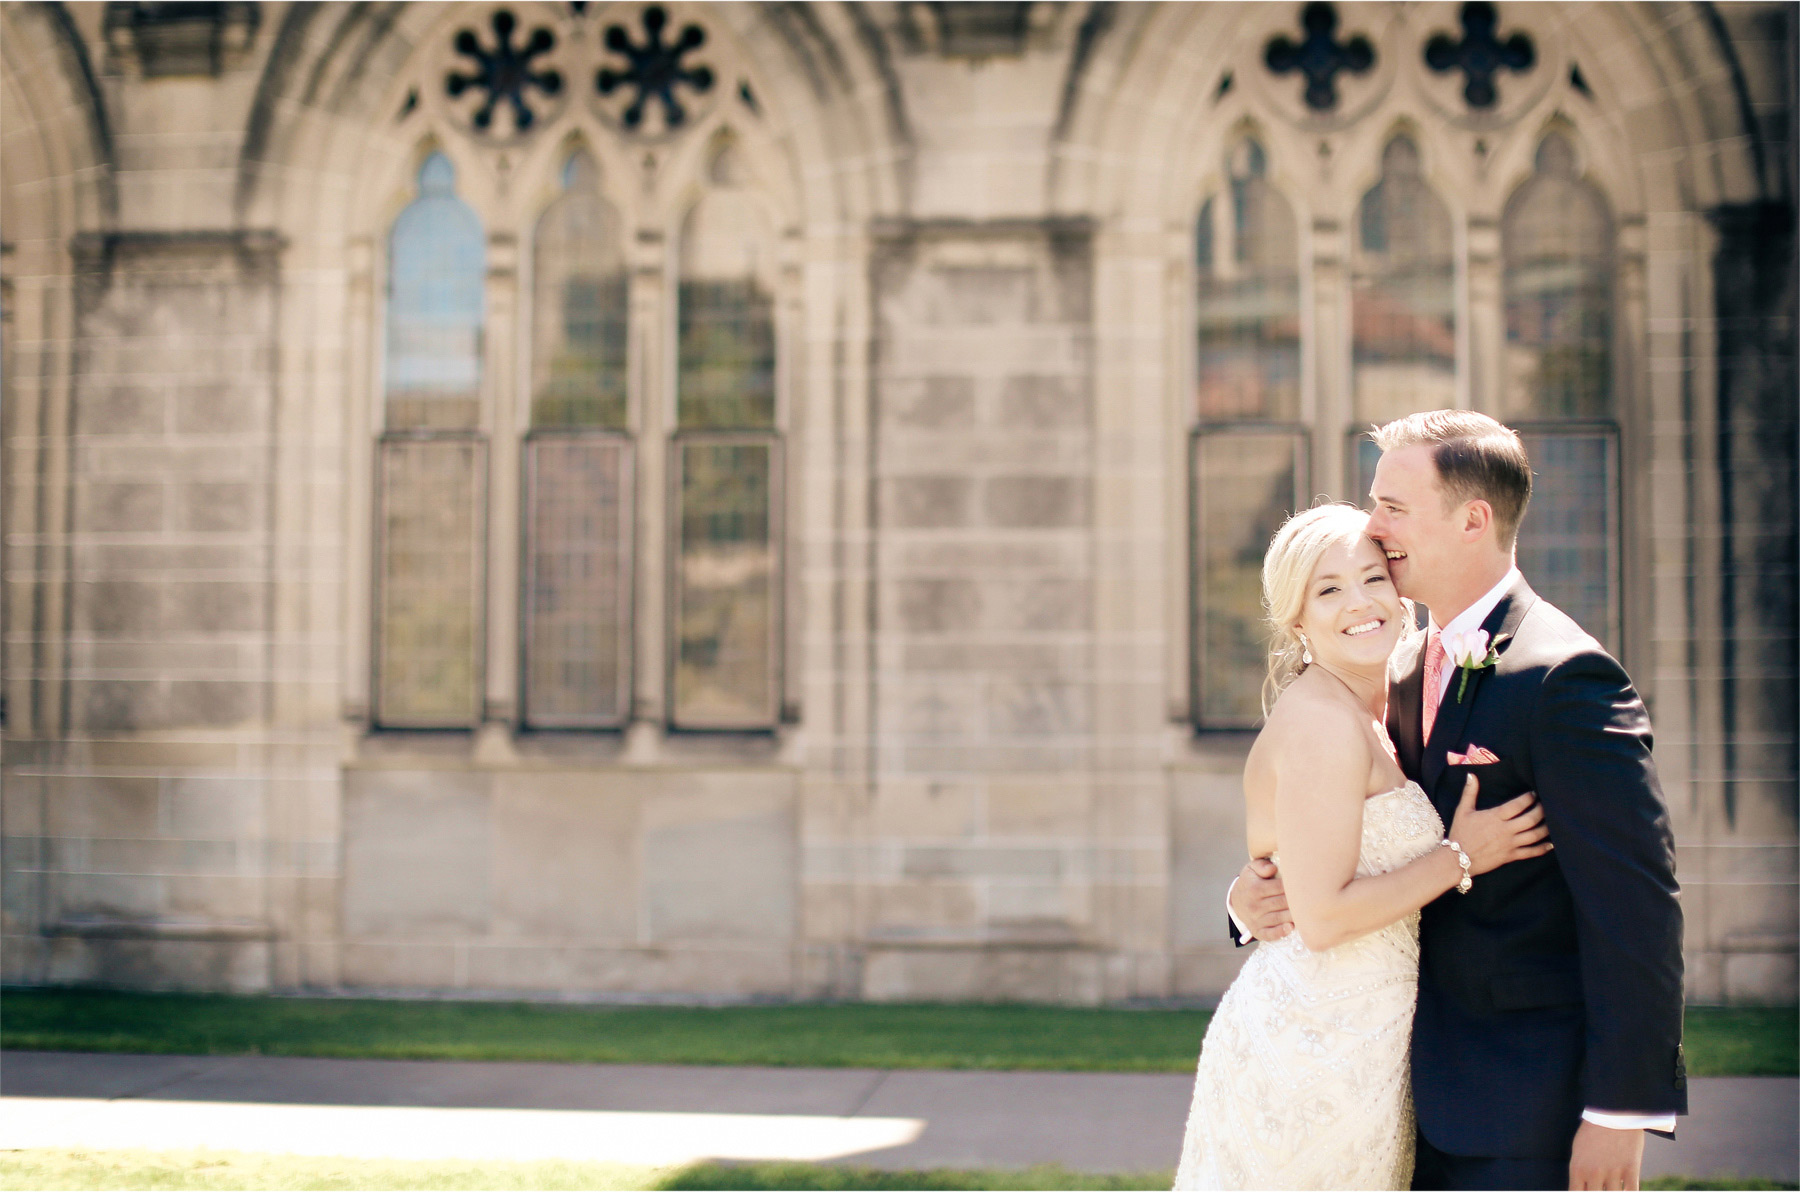 06-Duluth-Minnesota-Wedding-Photographer-by-Andrew-Vick-Photography-Summer-Cathedral-of-Our-Lady-of-the-Rosary-Church-First-Meeting-Bride-GroomCourtyard-Embrace-Vintage-Lindsey-and-Adam.jpg